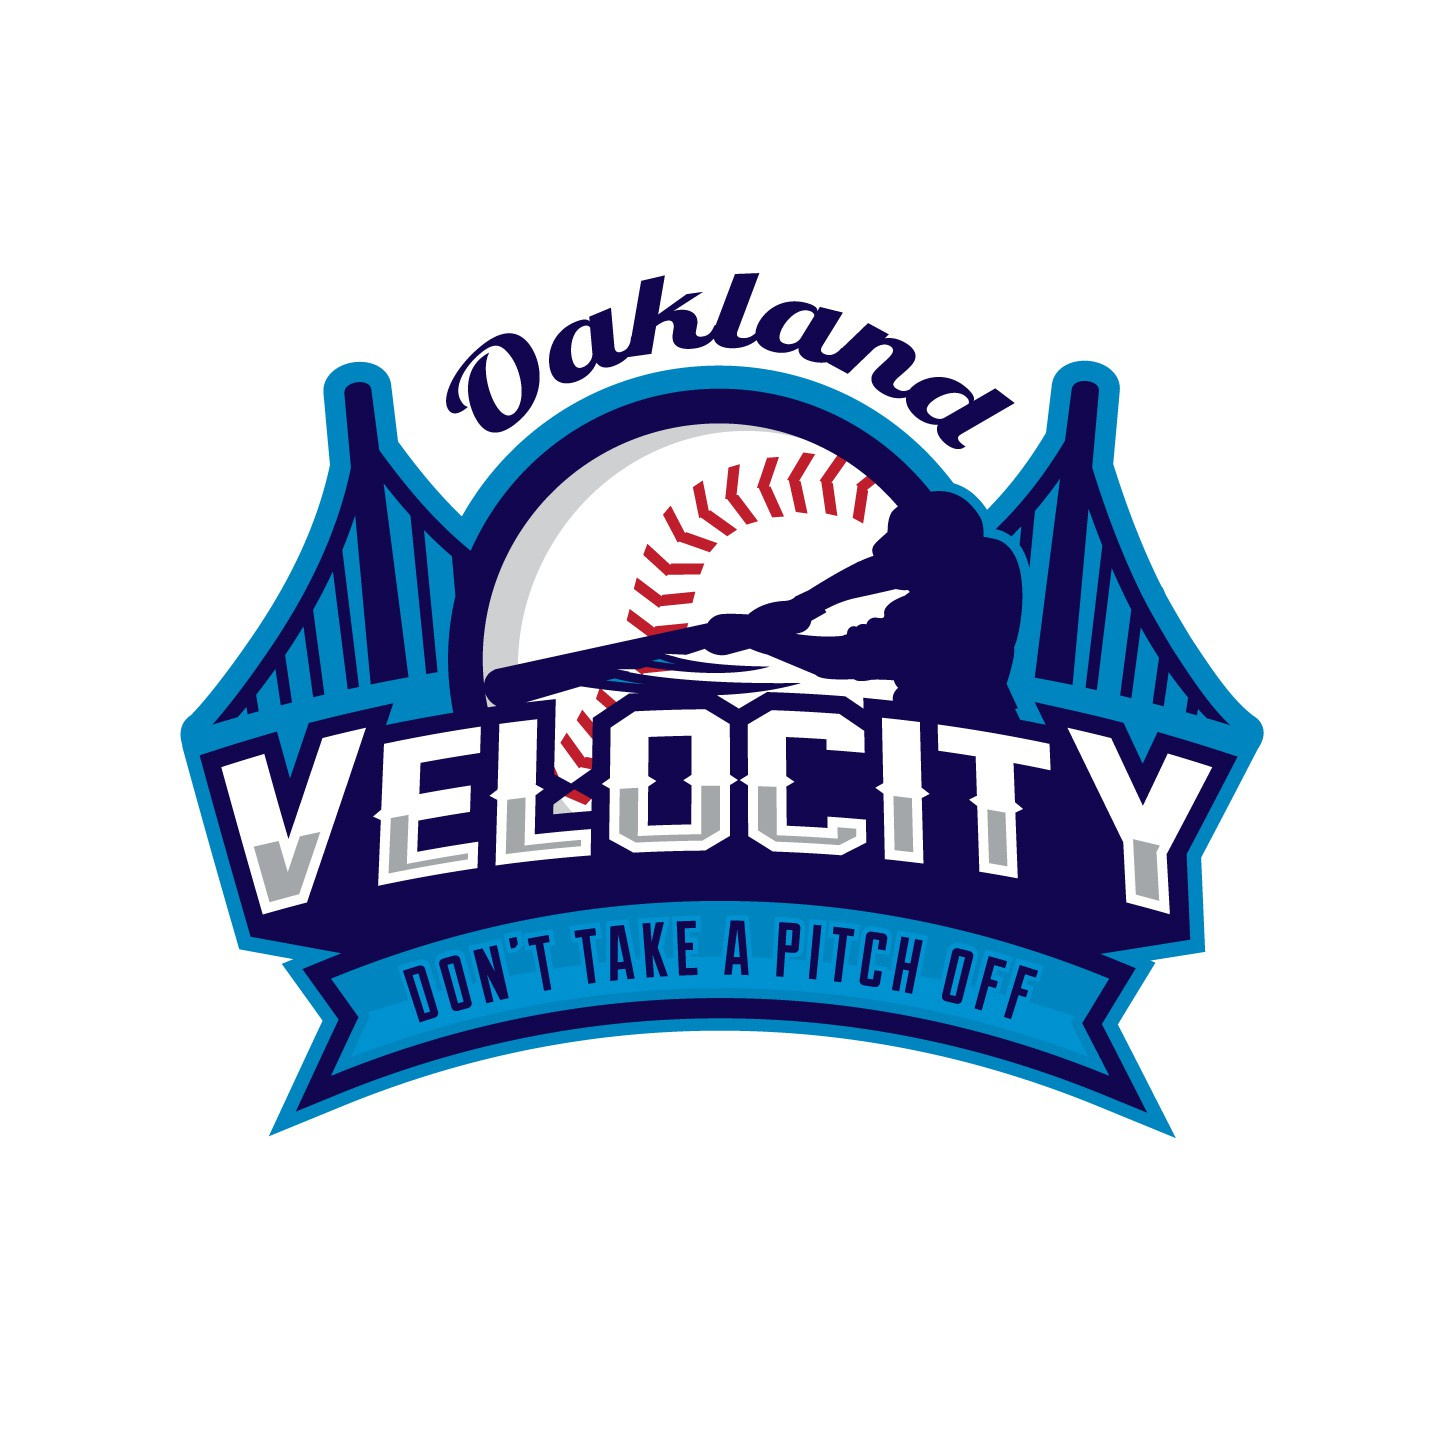 Let's Play Ball!!! Design a logo for a high energy youth baseball team that competes to the last pitch!